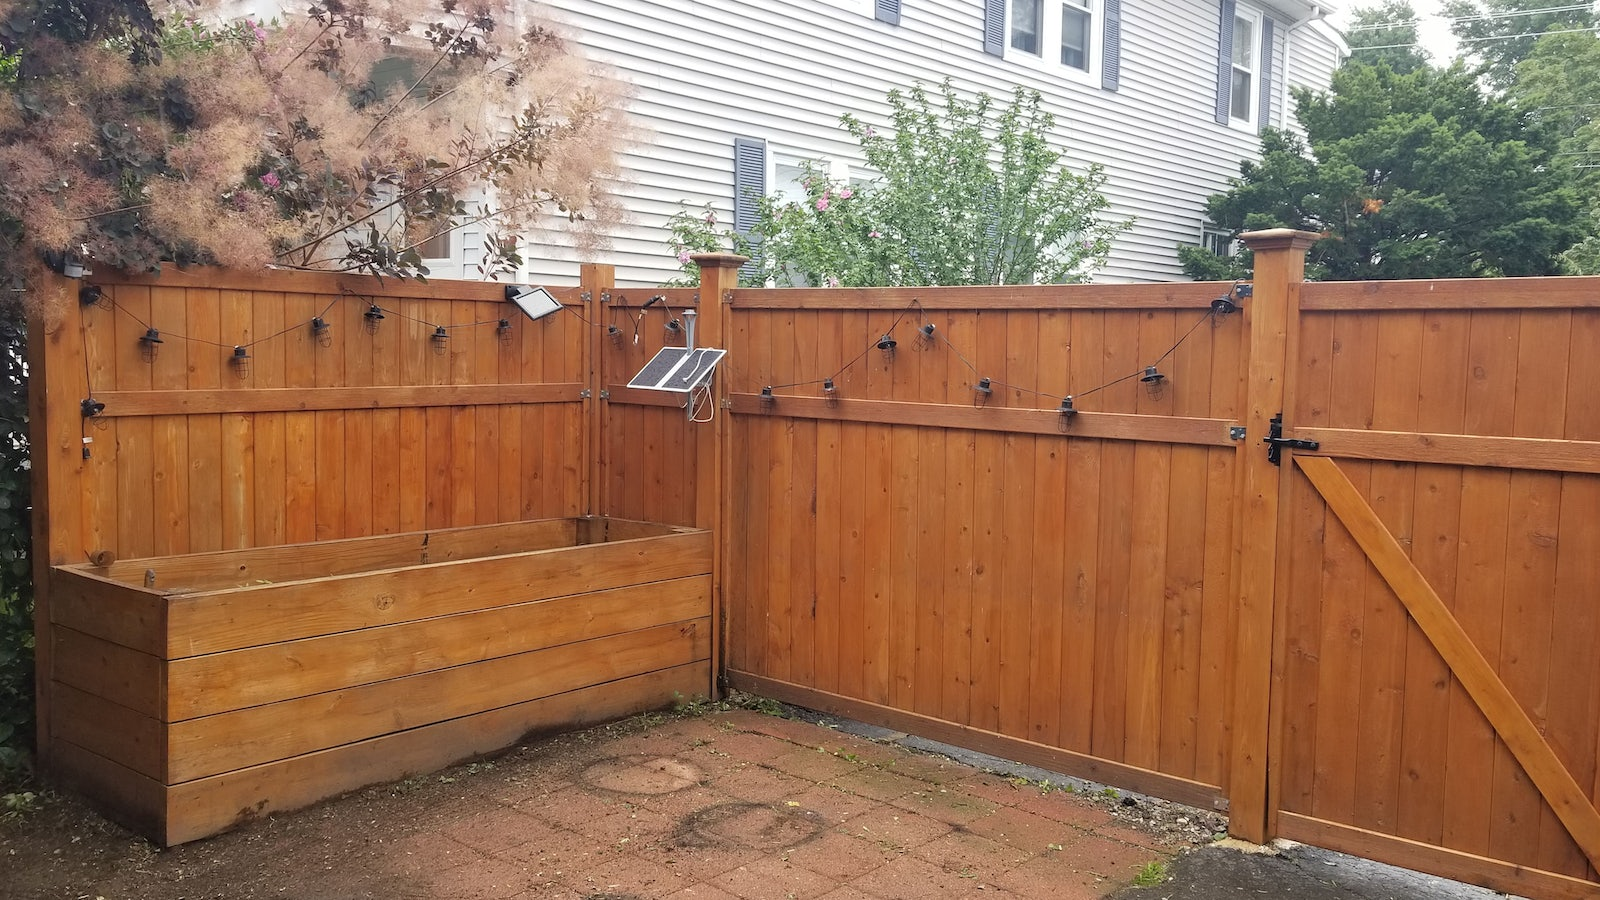 Sunny and Large 2 Bed, Parking, Fenced Yard, A/C. | Apply | Cozy